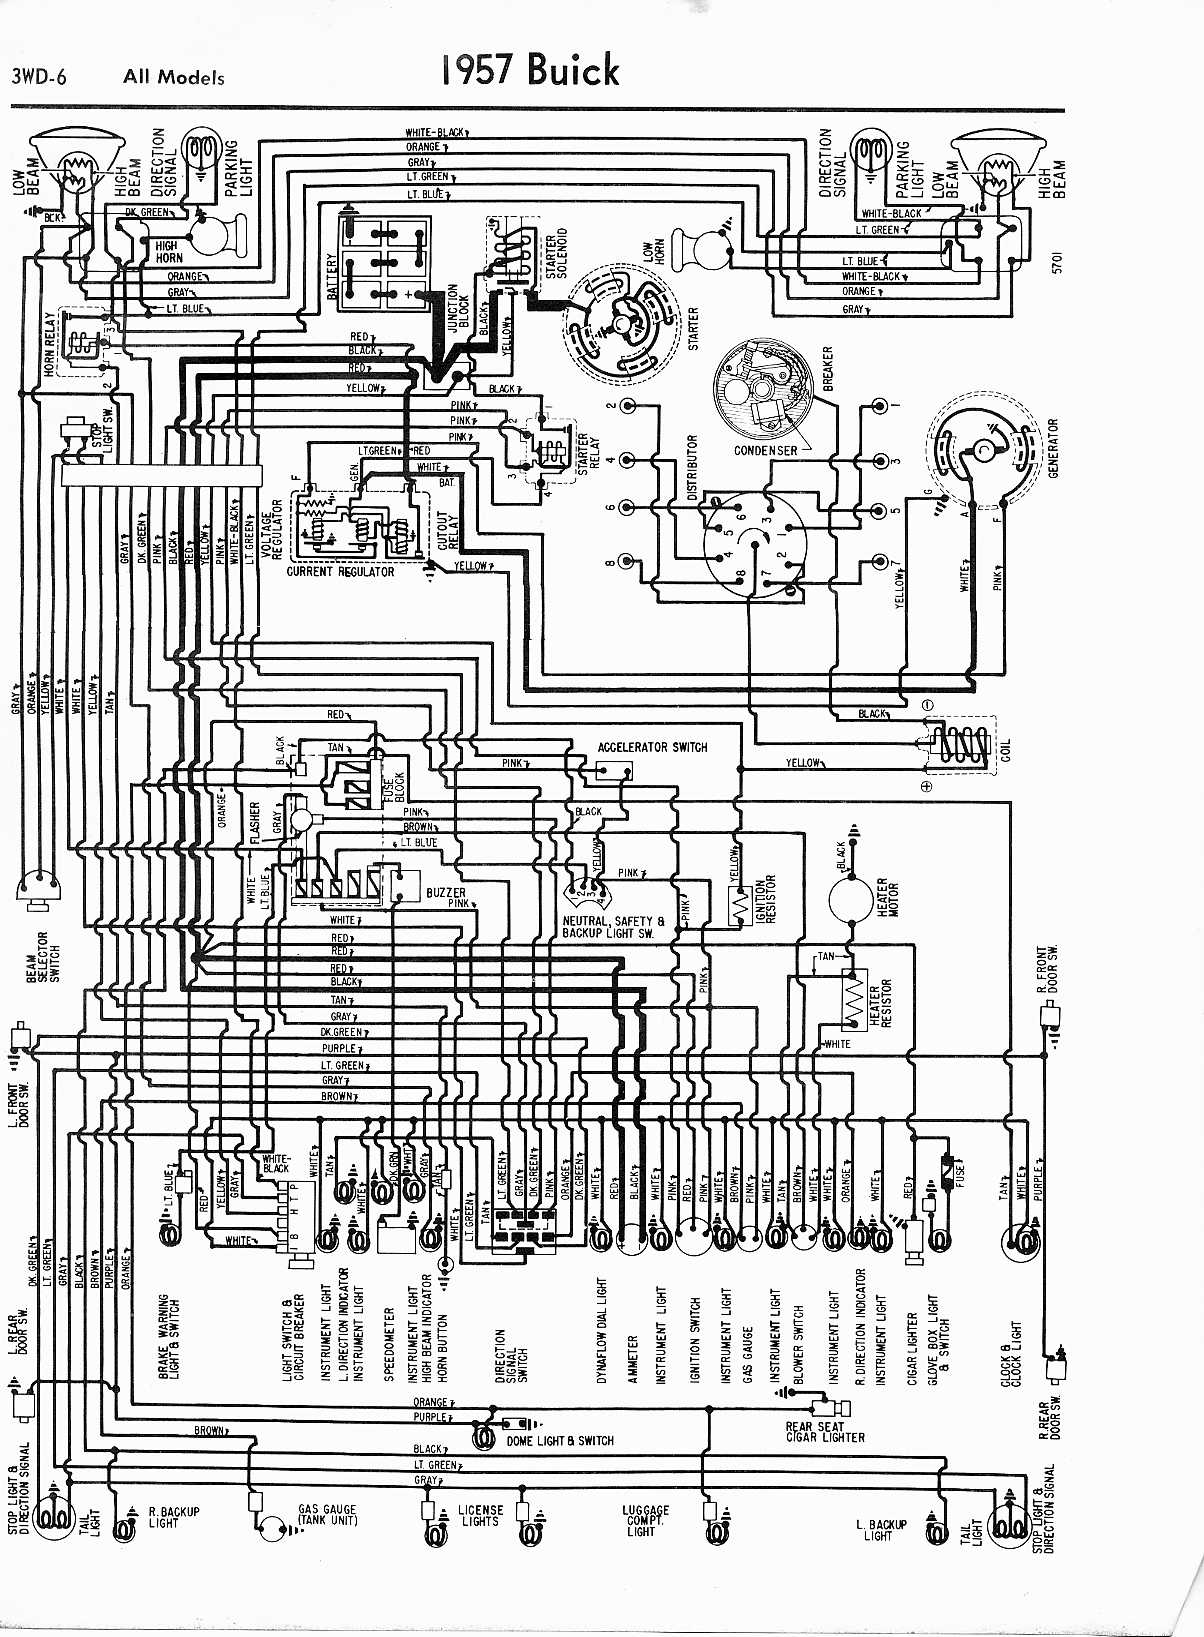 1964 Skylark Wiring Diagram Wiring Diagram